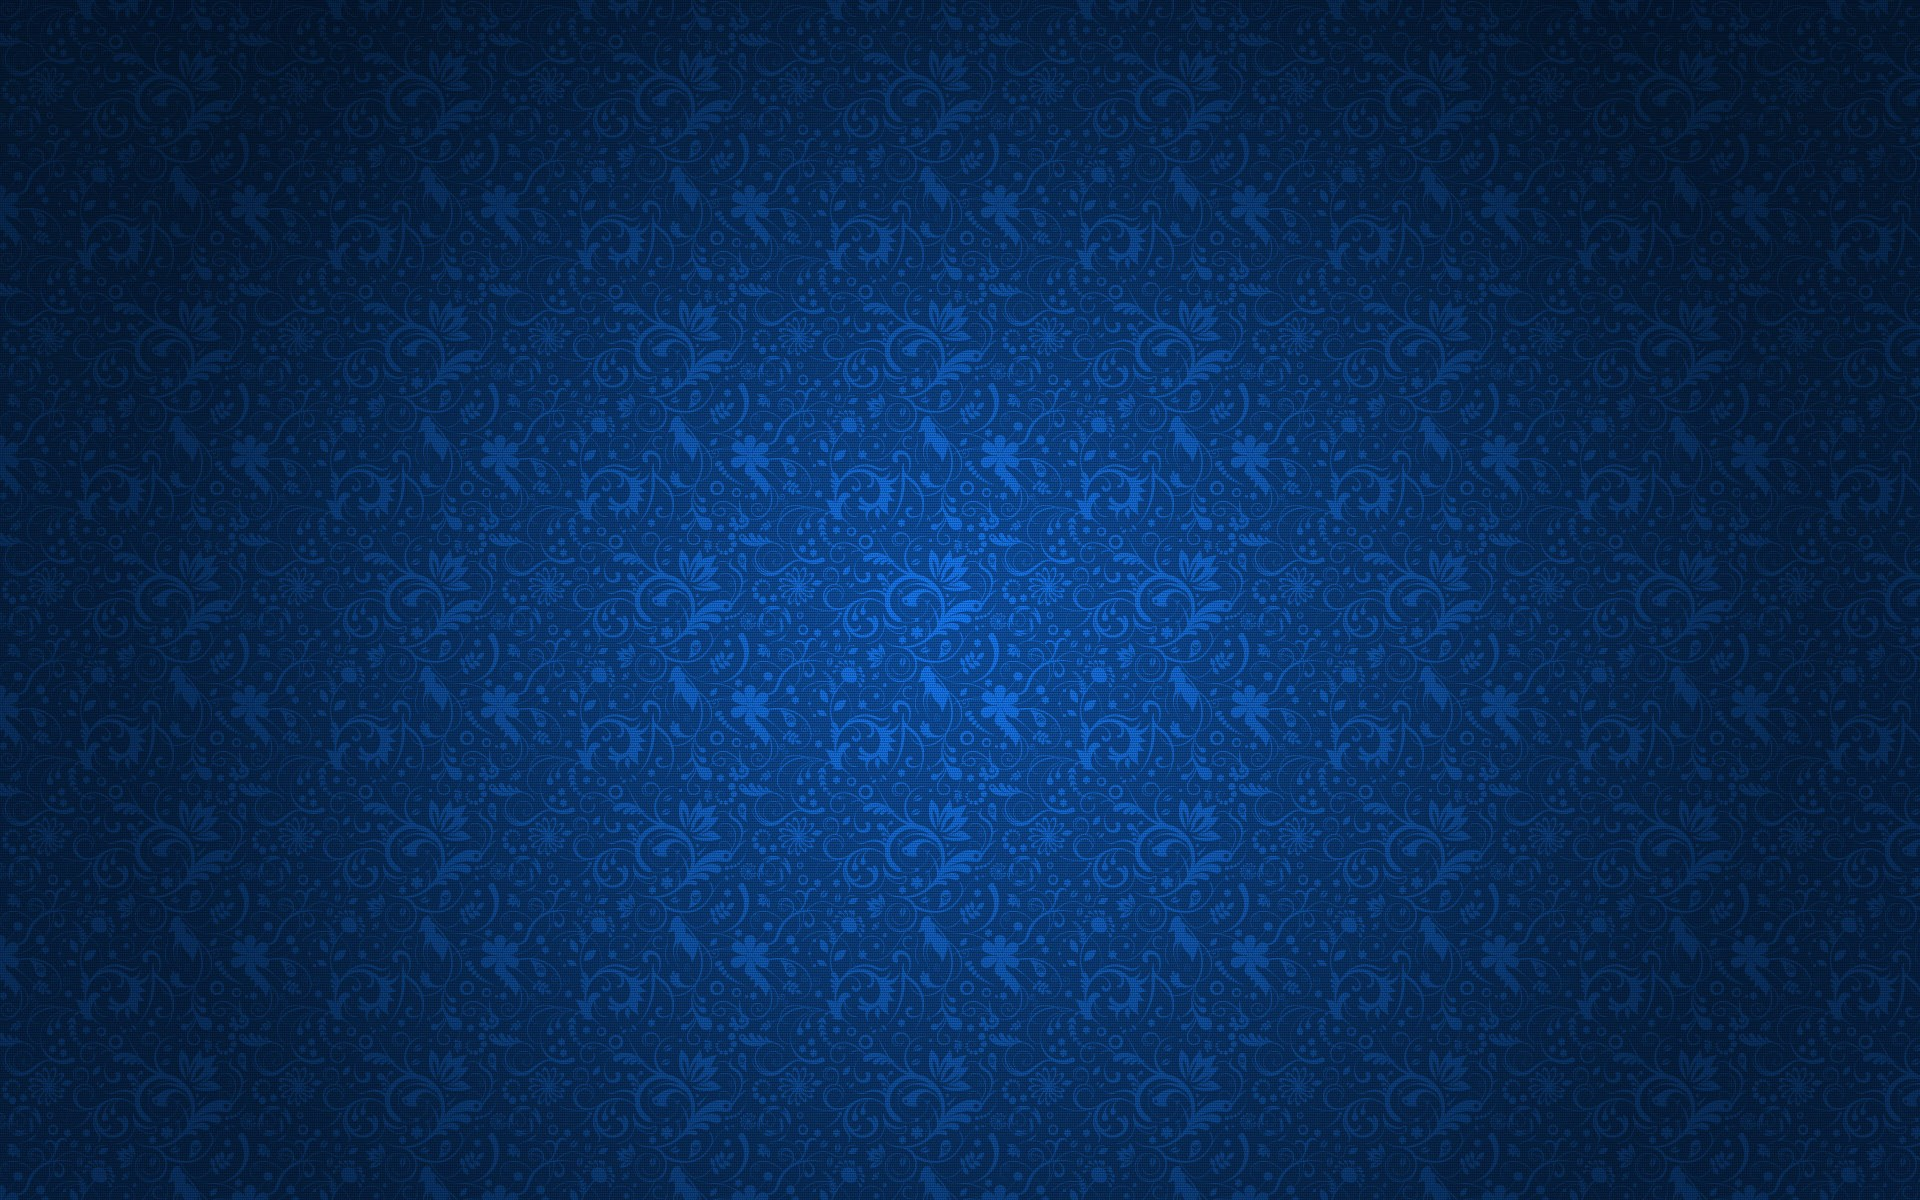 Textura de color azul - 1920x1200